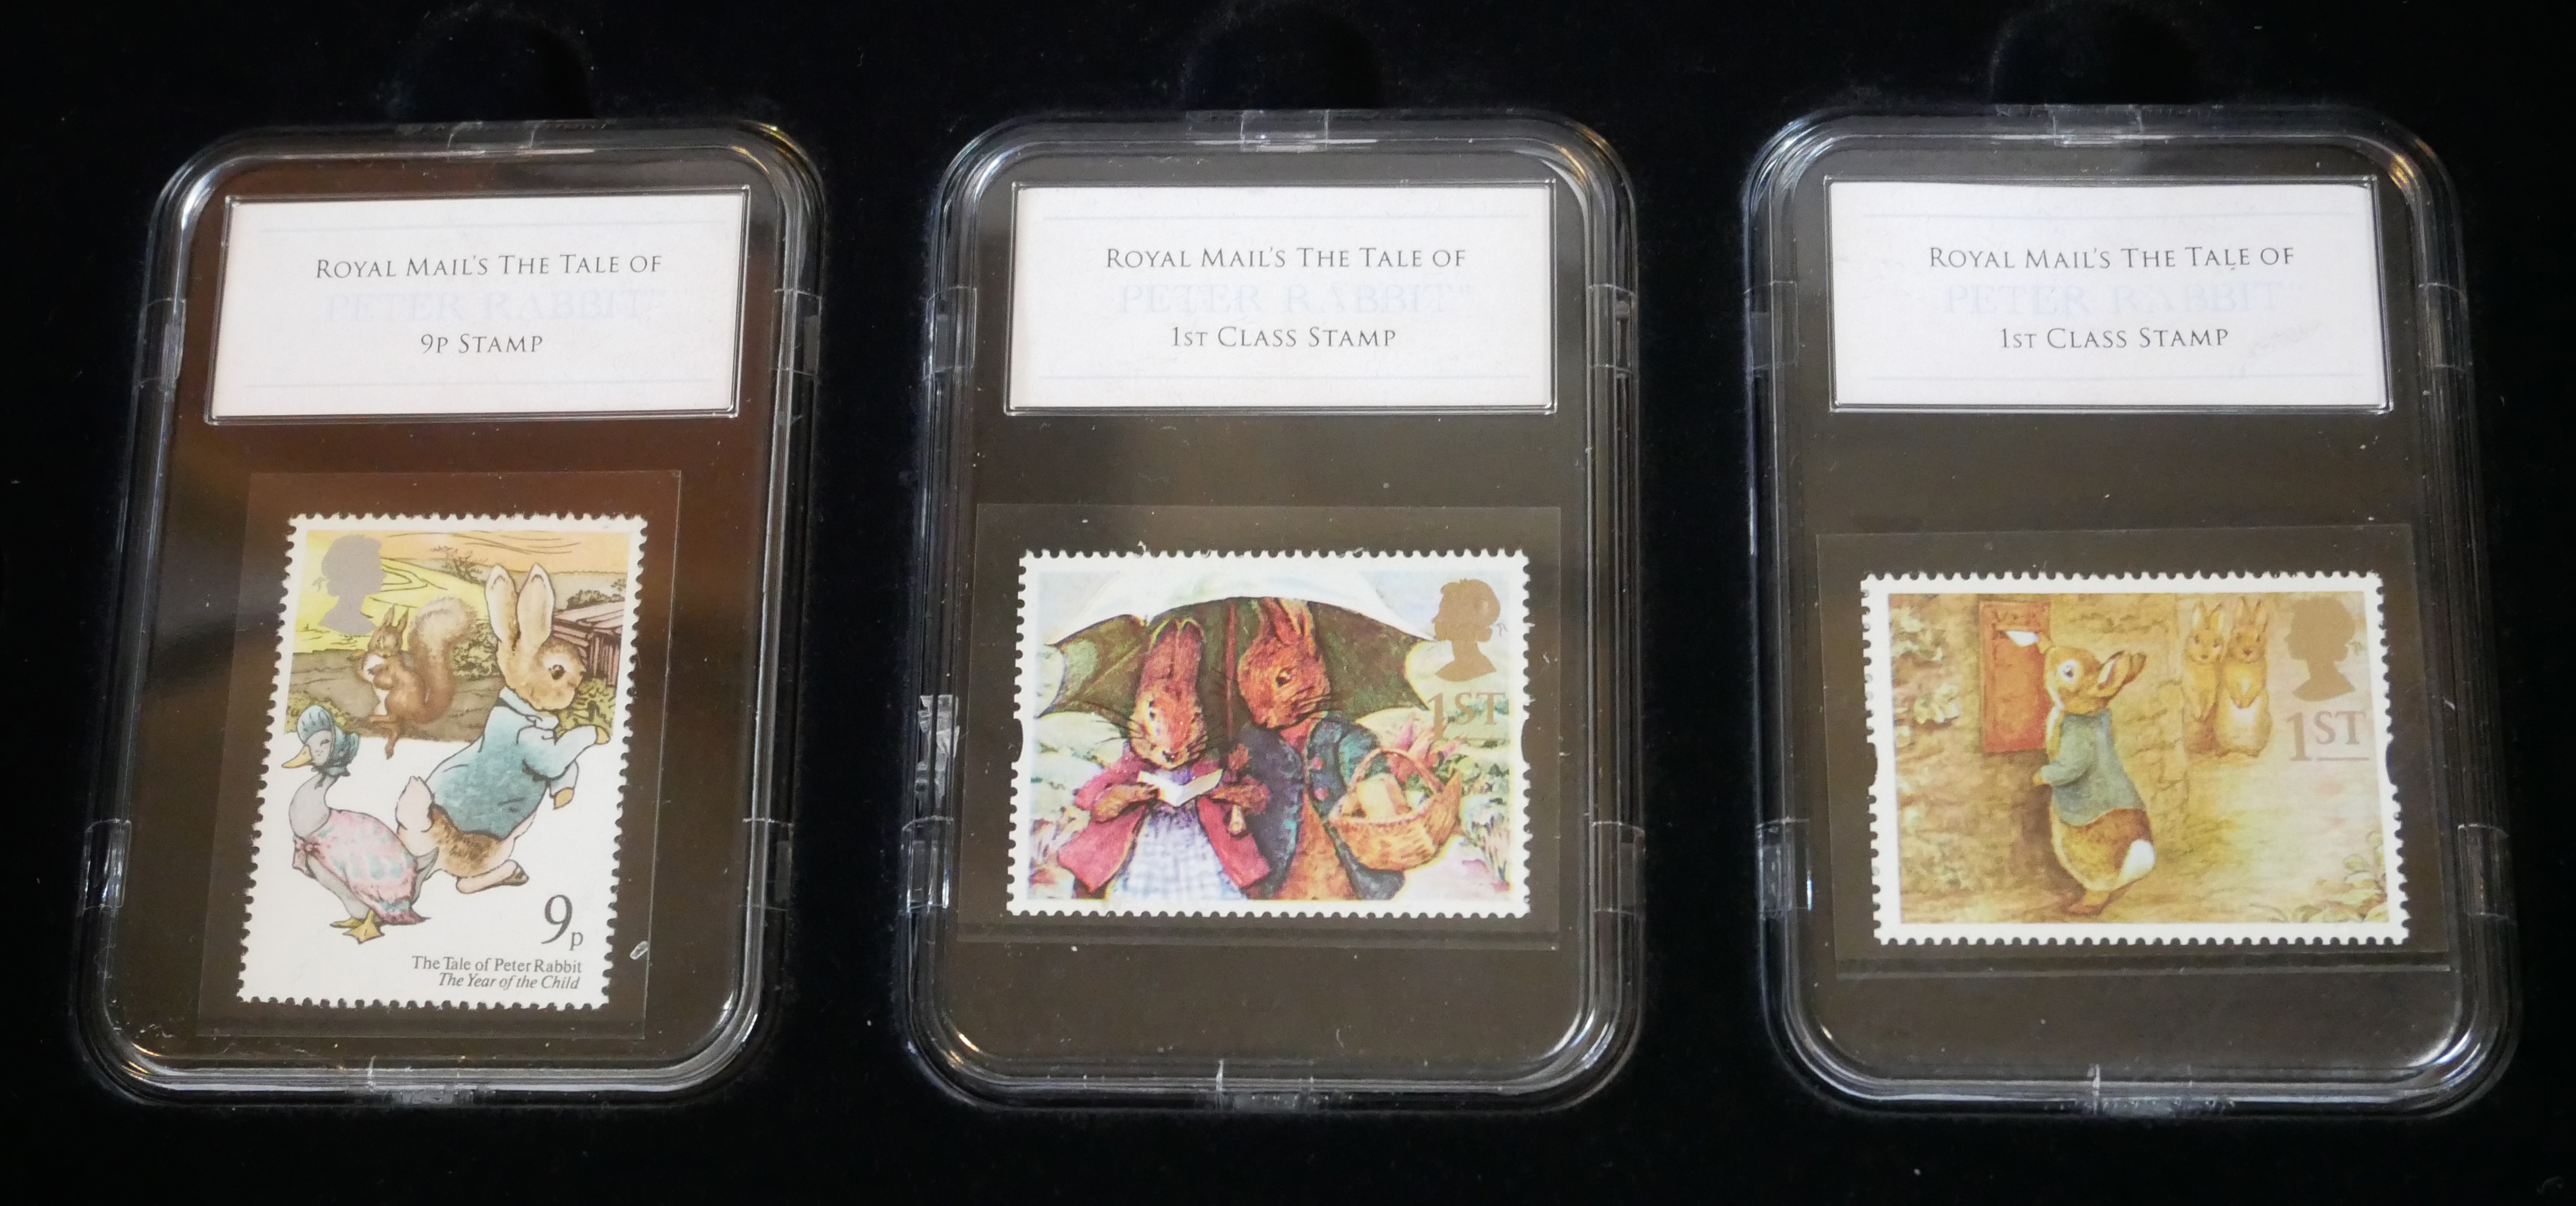 A COLLECTION OF THREE 'PREMIUM CAPSULE' POSTAGE STAMPS Limited edition to include Beatrix Potter, - Image 5 of 5